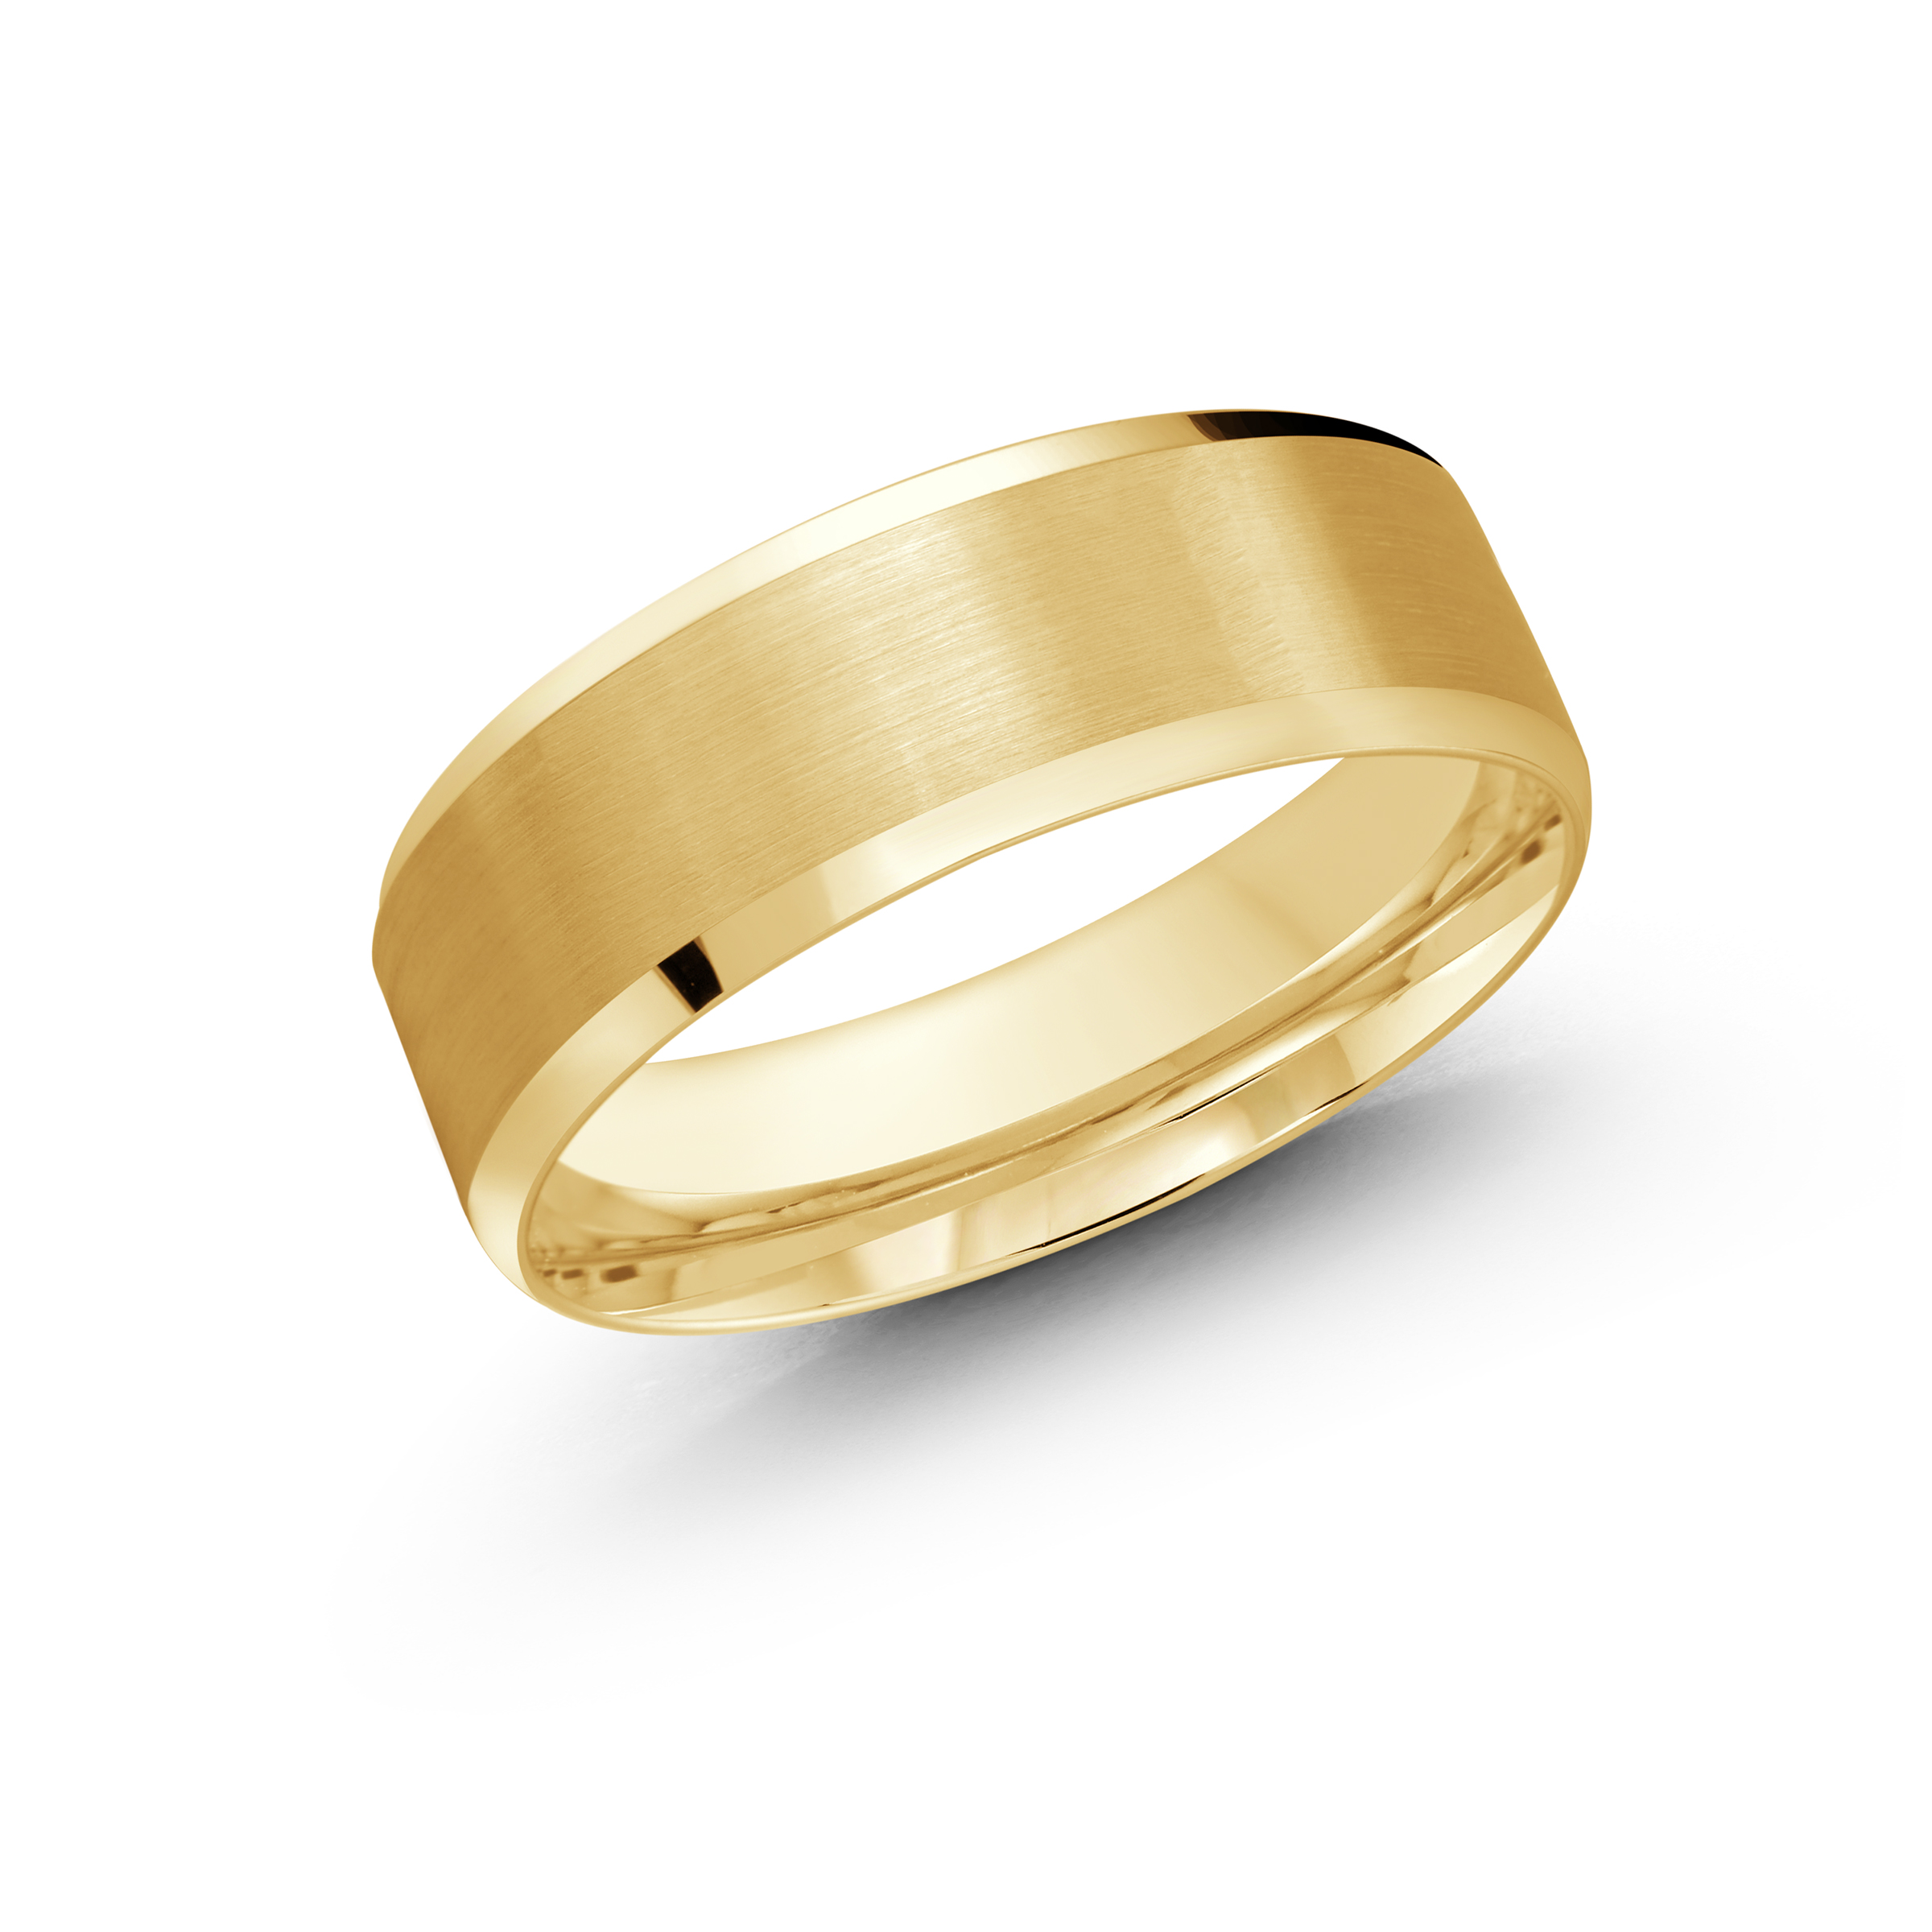 Yellow Gold Men's Ring Size 7mm (LUX-1105-7Y)